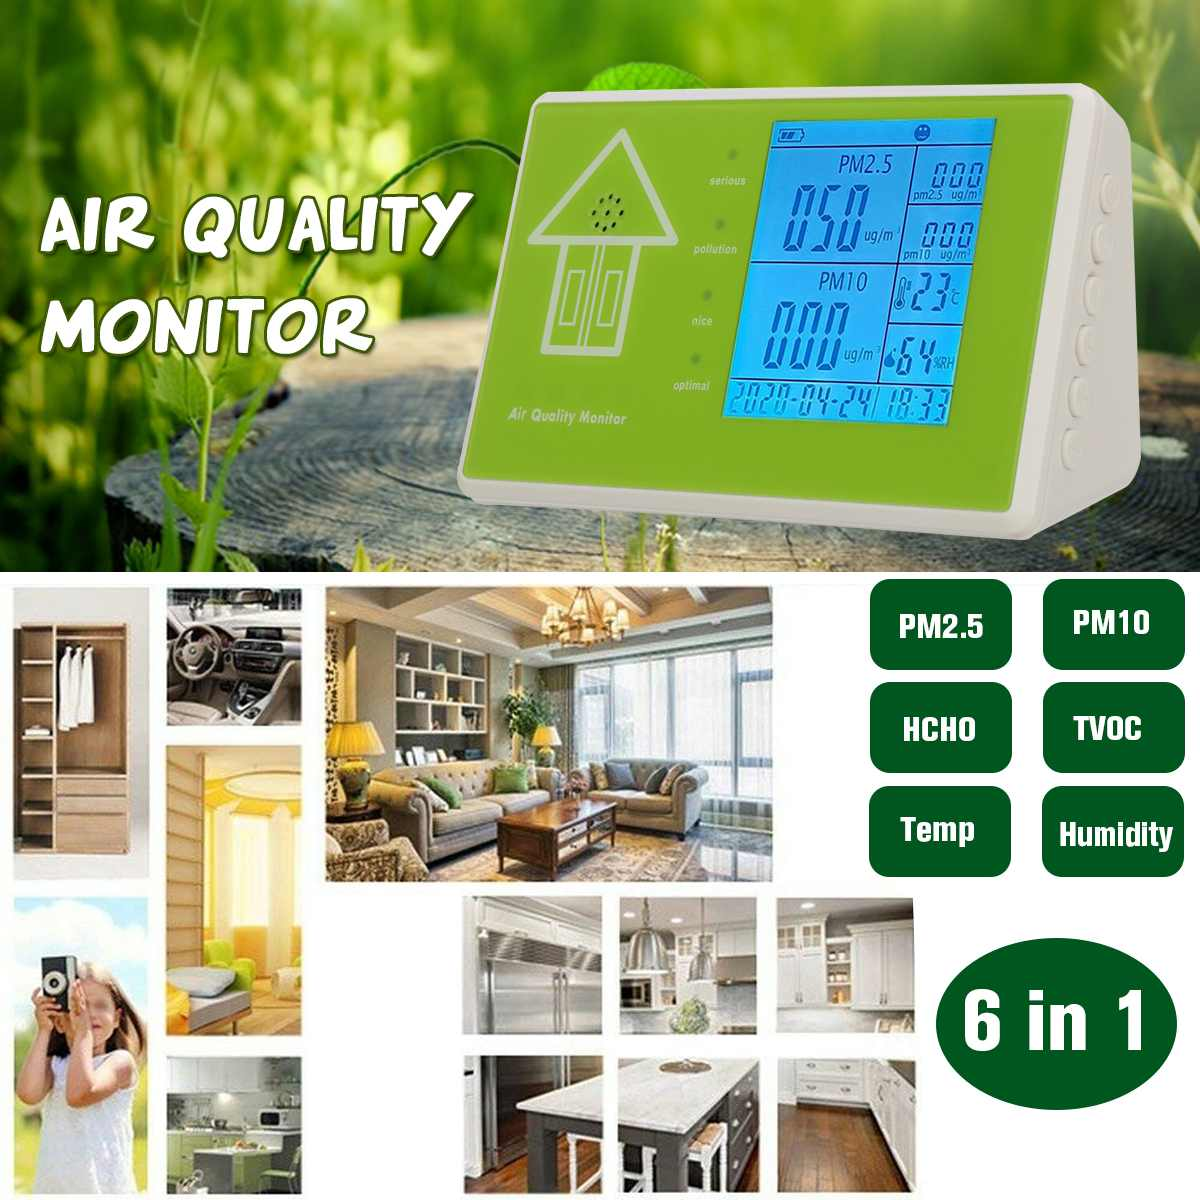 Digital Formaldehyde Detector Multifunctional Gas Analyzer Air Quality HCHO TVOC PM1.0 PM2.5 PM10 Monitor for Household CarDigital Formaldehyde Detector Multifunctional Gas Analyzer Air Quality HCHO TVOC PM1.0 PM2.5 PM10 Monitor for Household Car